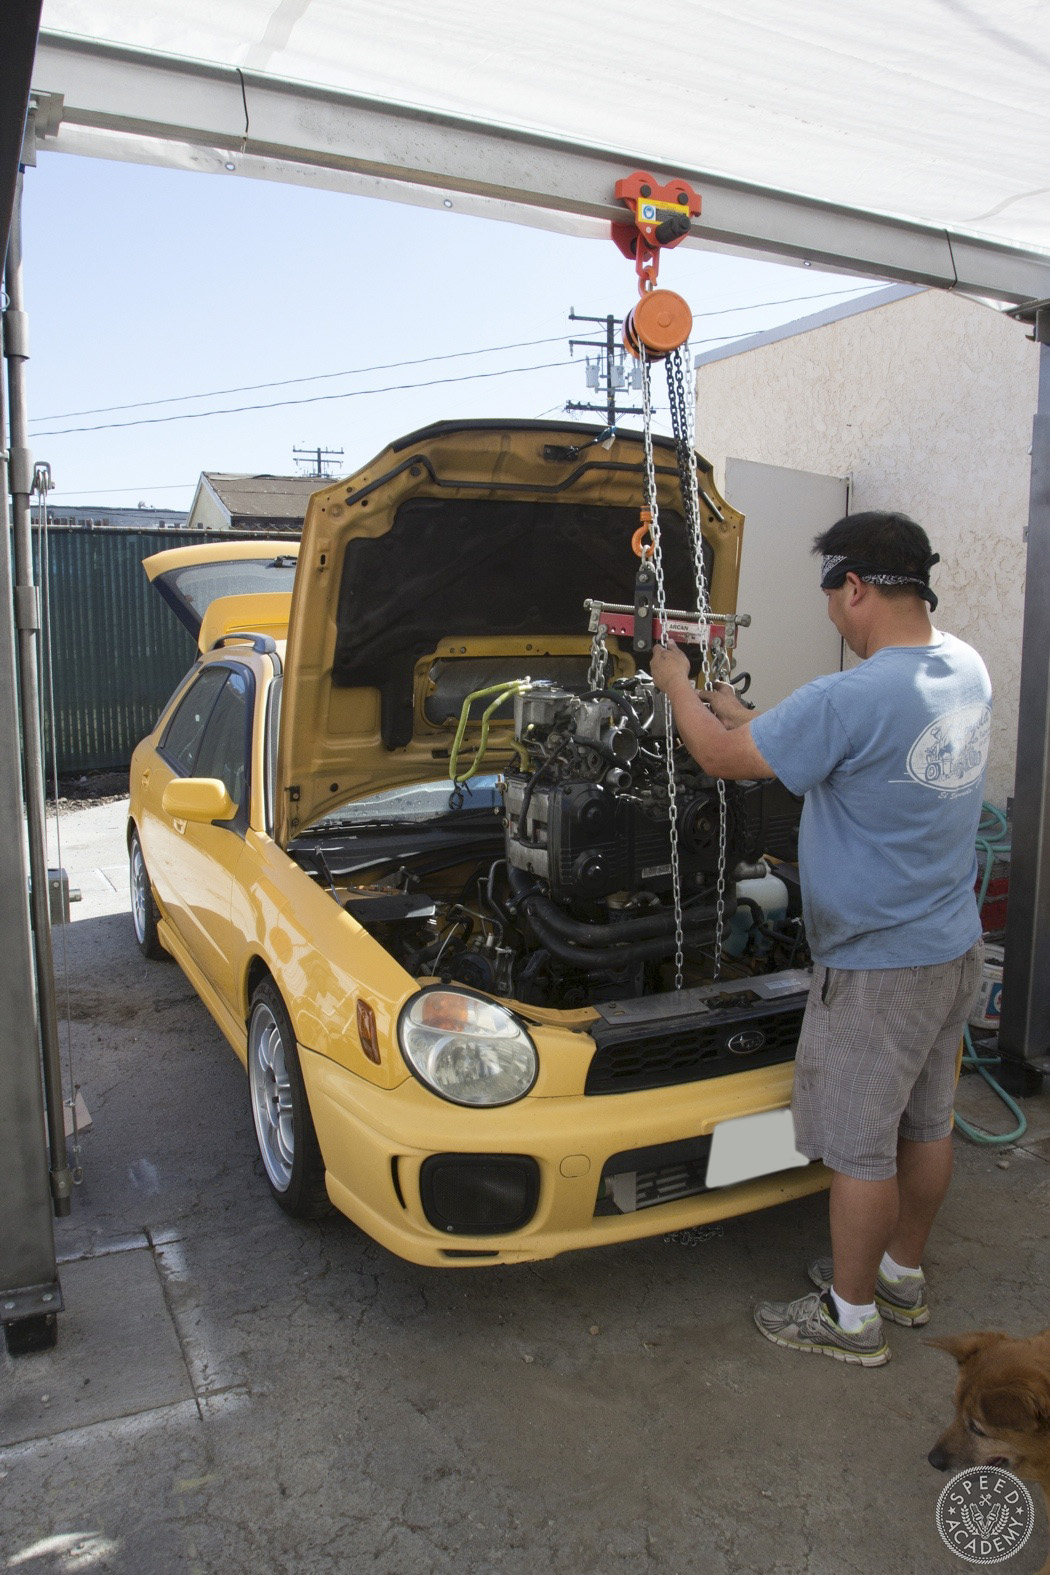 Subaru-WRX-turbo-camshaft-upgrade-269